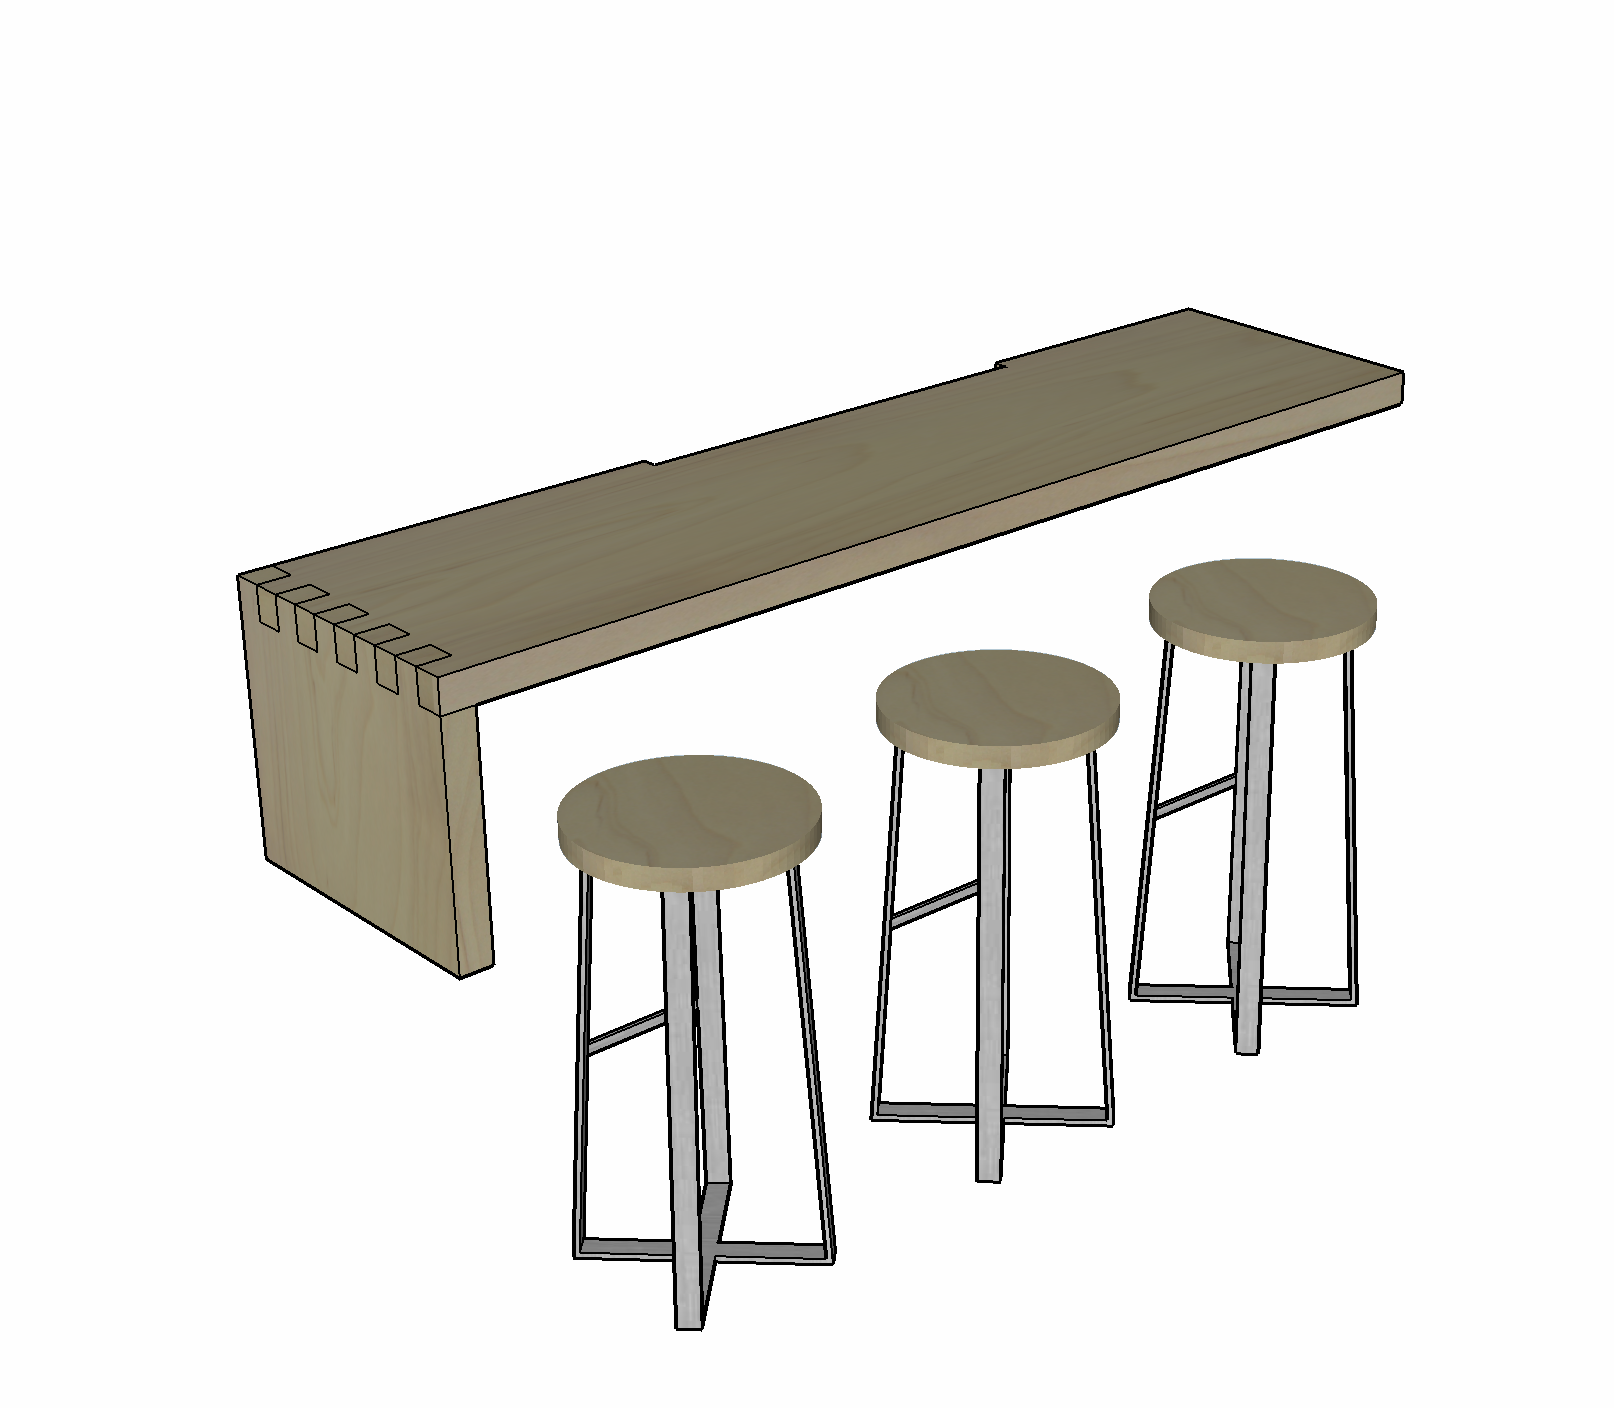 Custom Wall-Mounted Bar